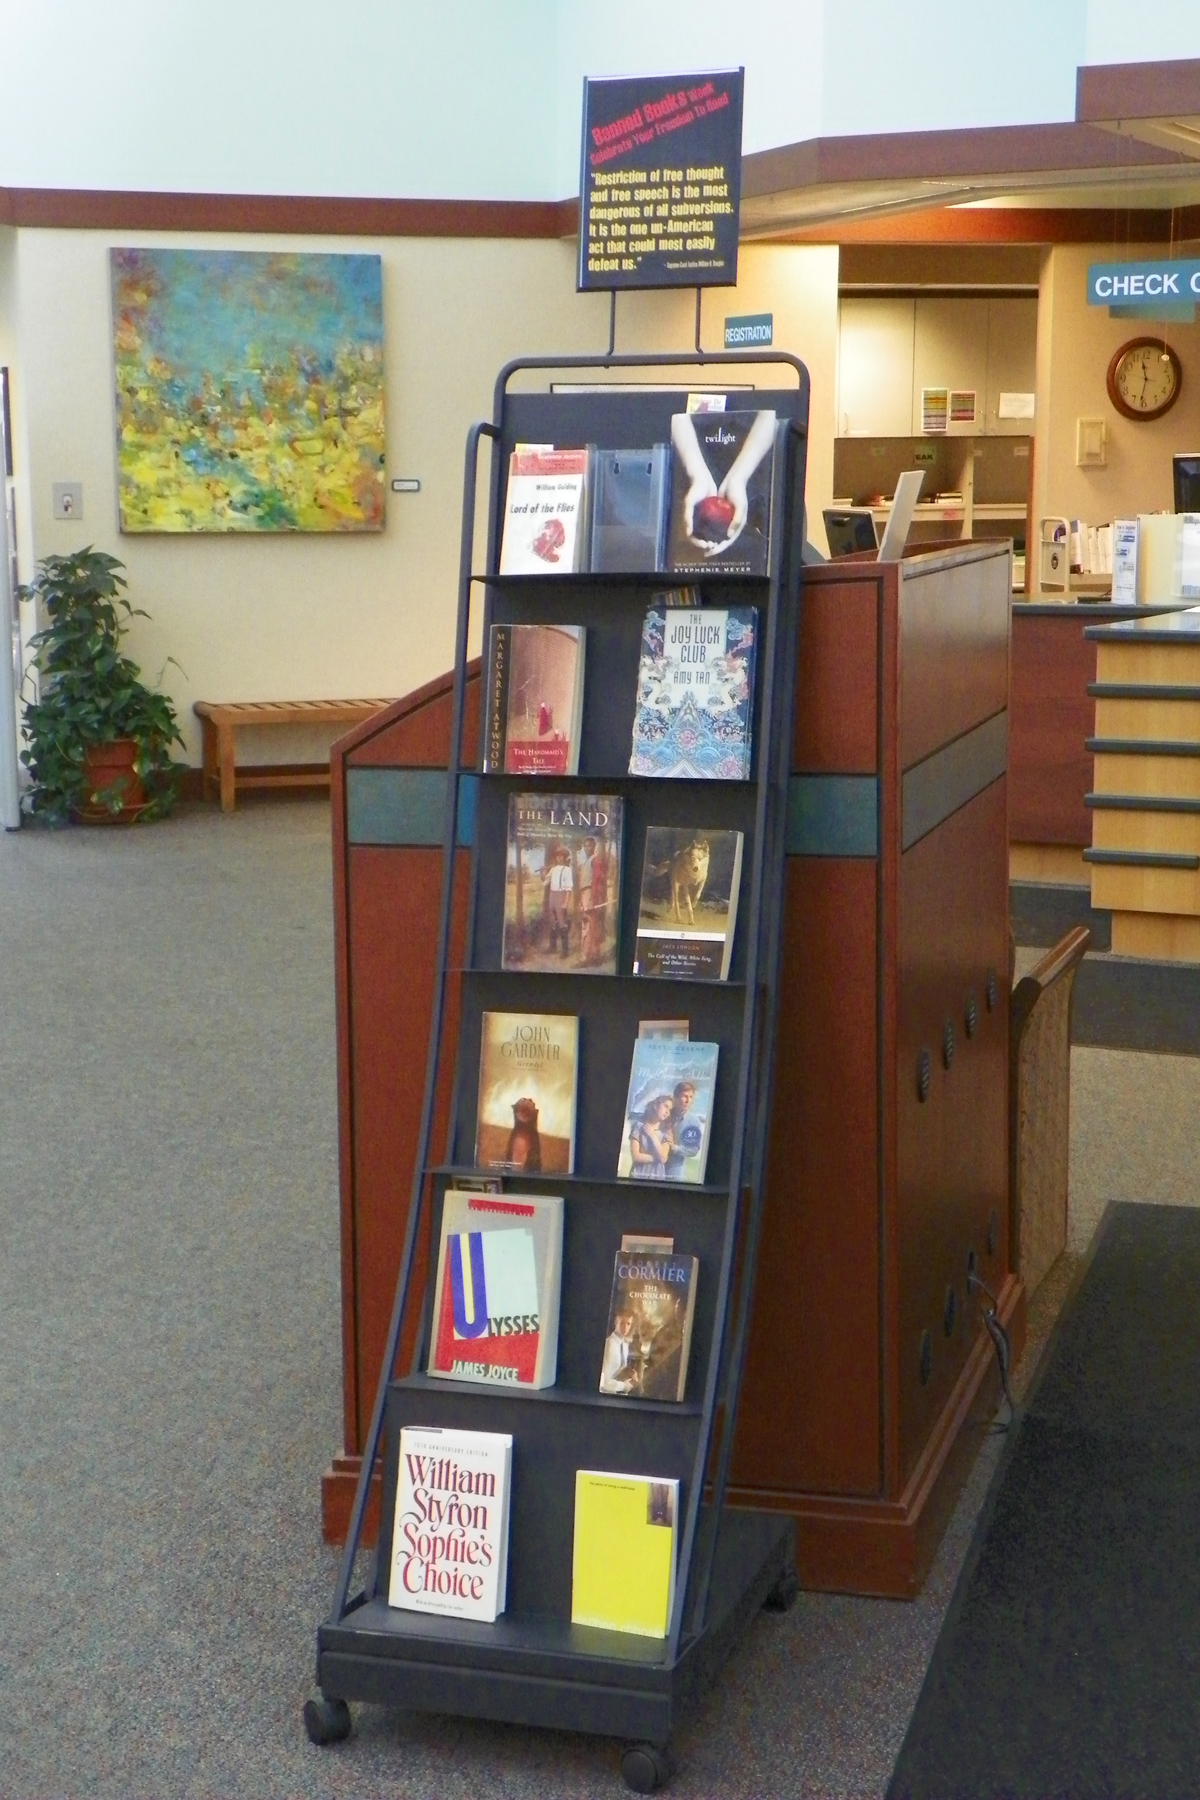 Reading picks in honor of the week-long BBW observance are on display at Lake Villa (Ill.) Public Library.